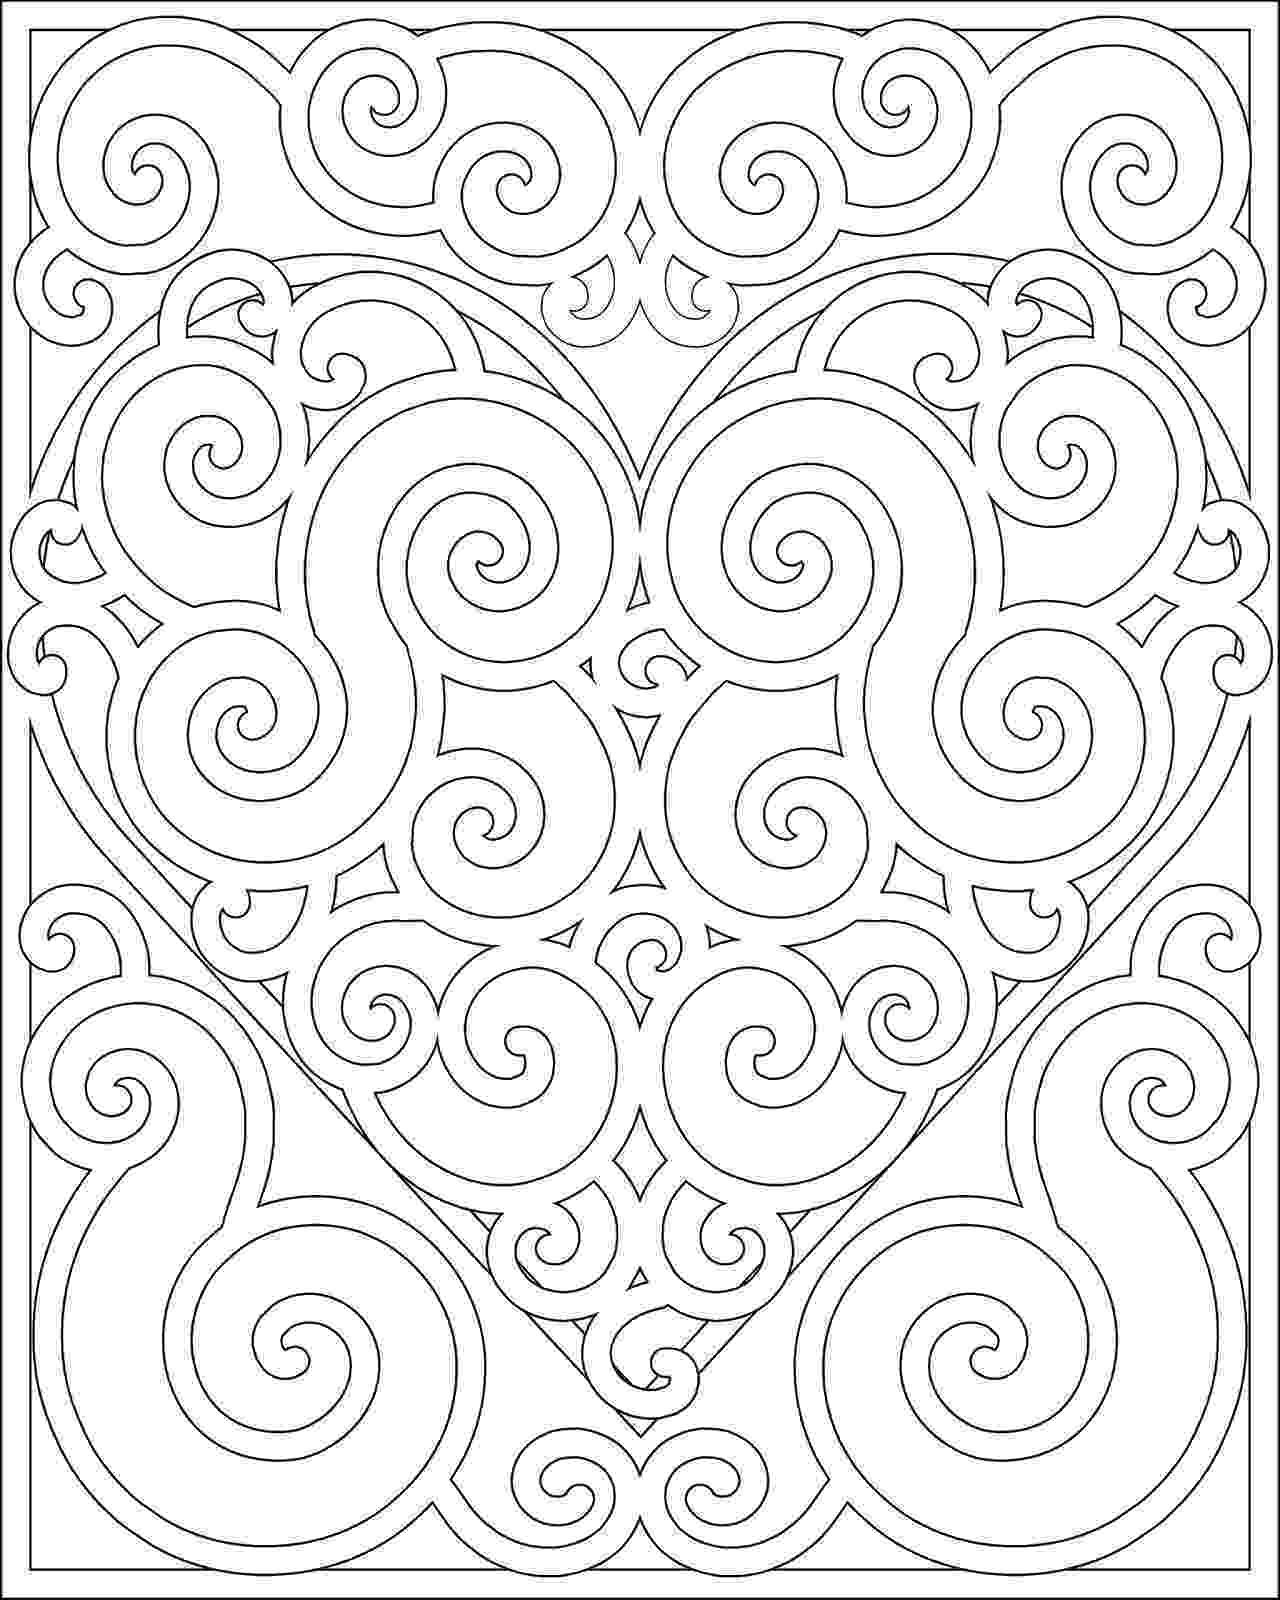 colouring pattern free printable abstract coloring pages for adults pattern colouring